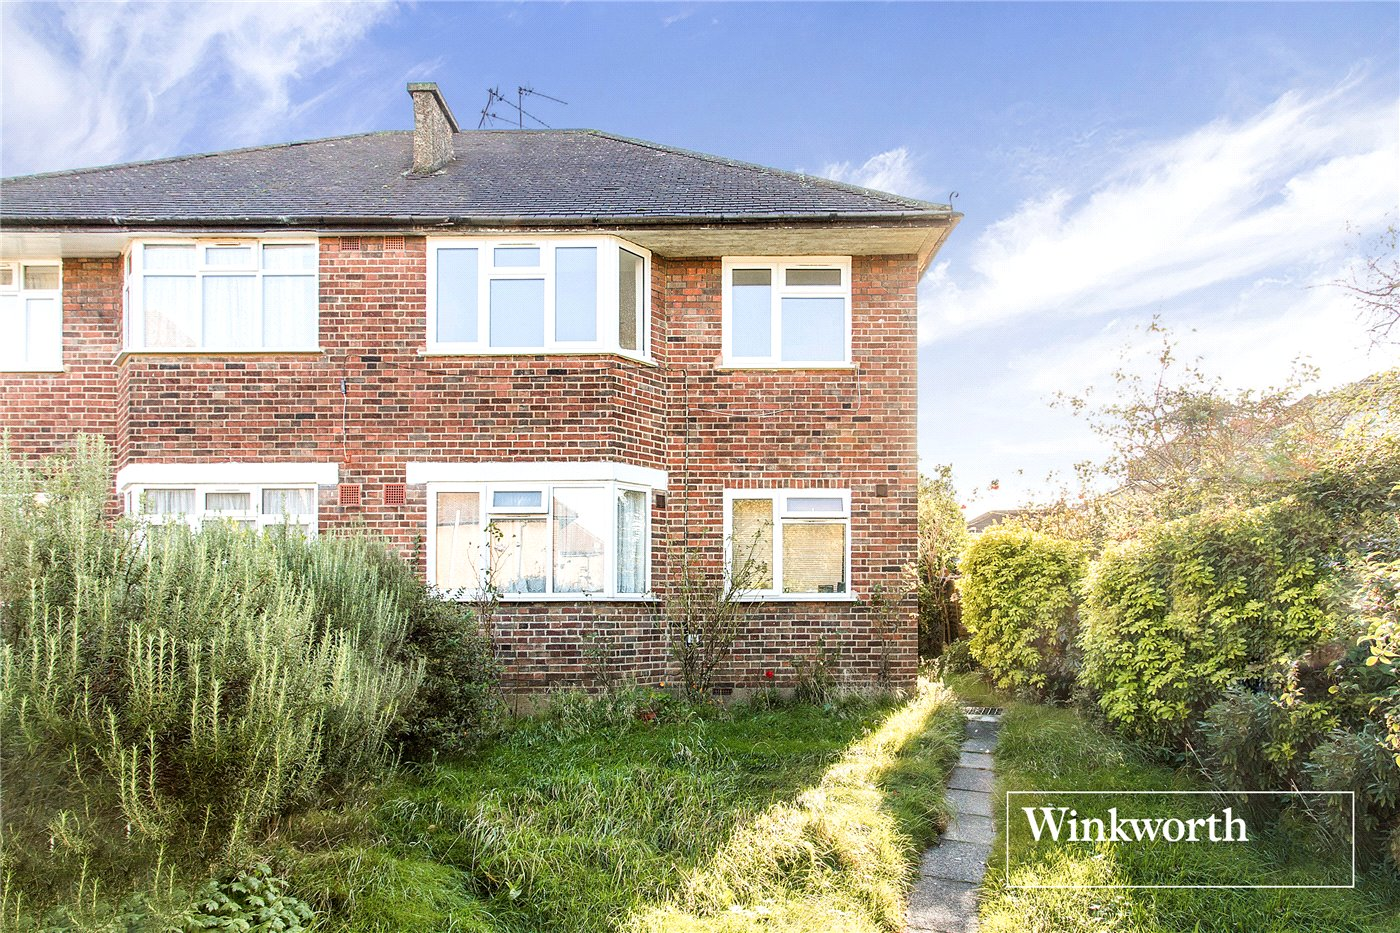 2 Bedrooms Maisonette Flat for sale in Station Close, Finchley, London, N3